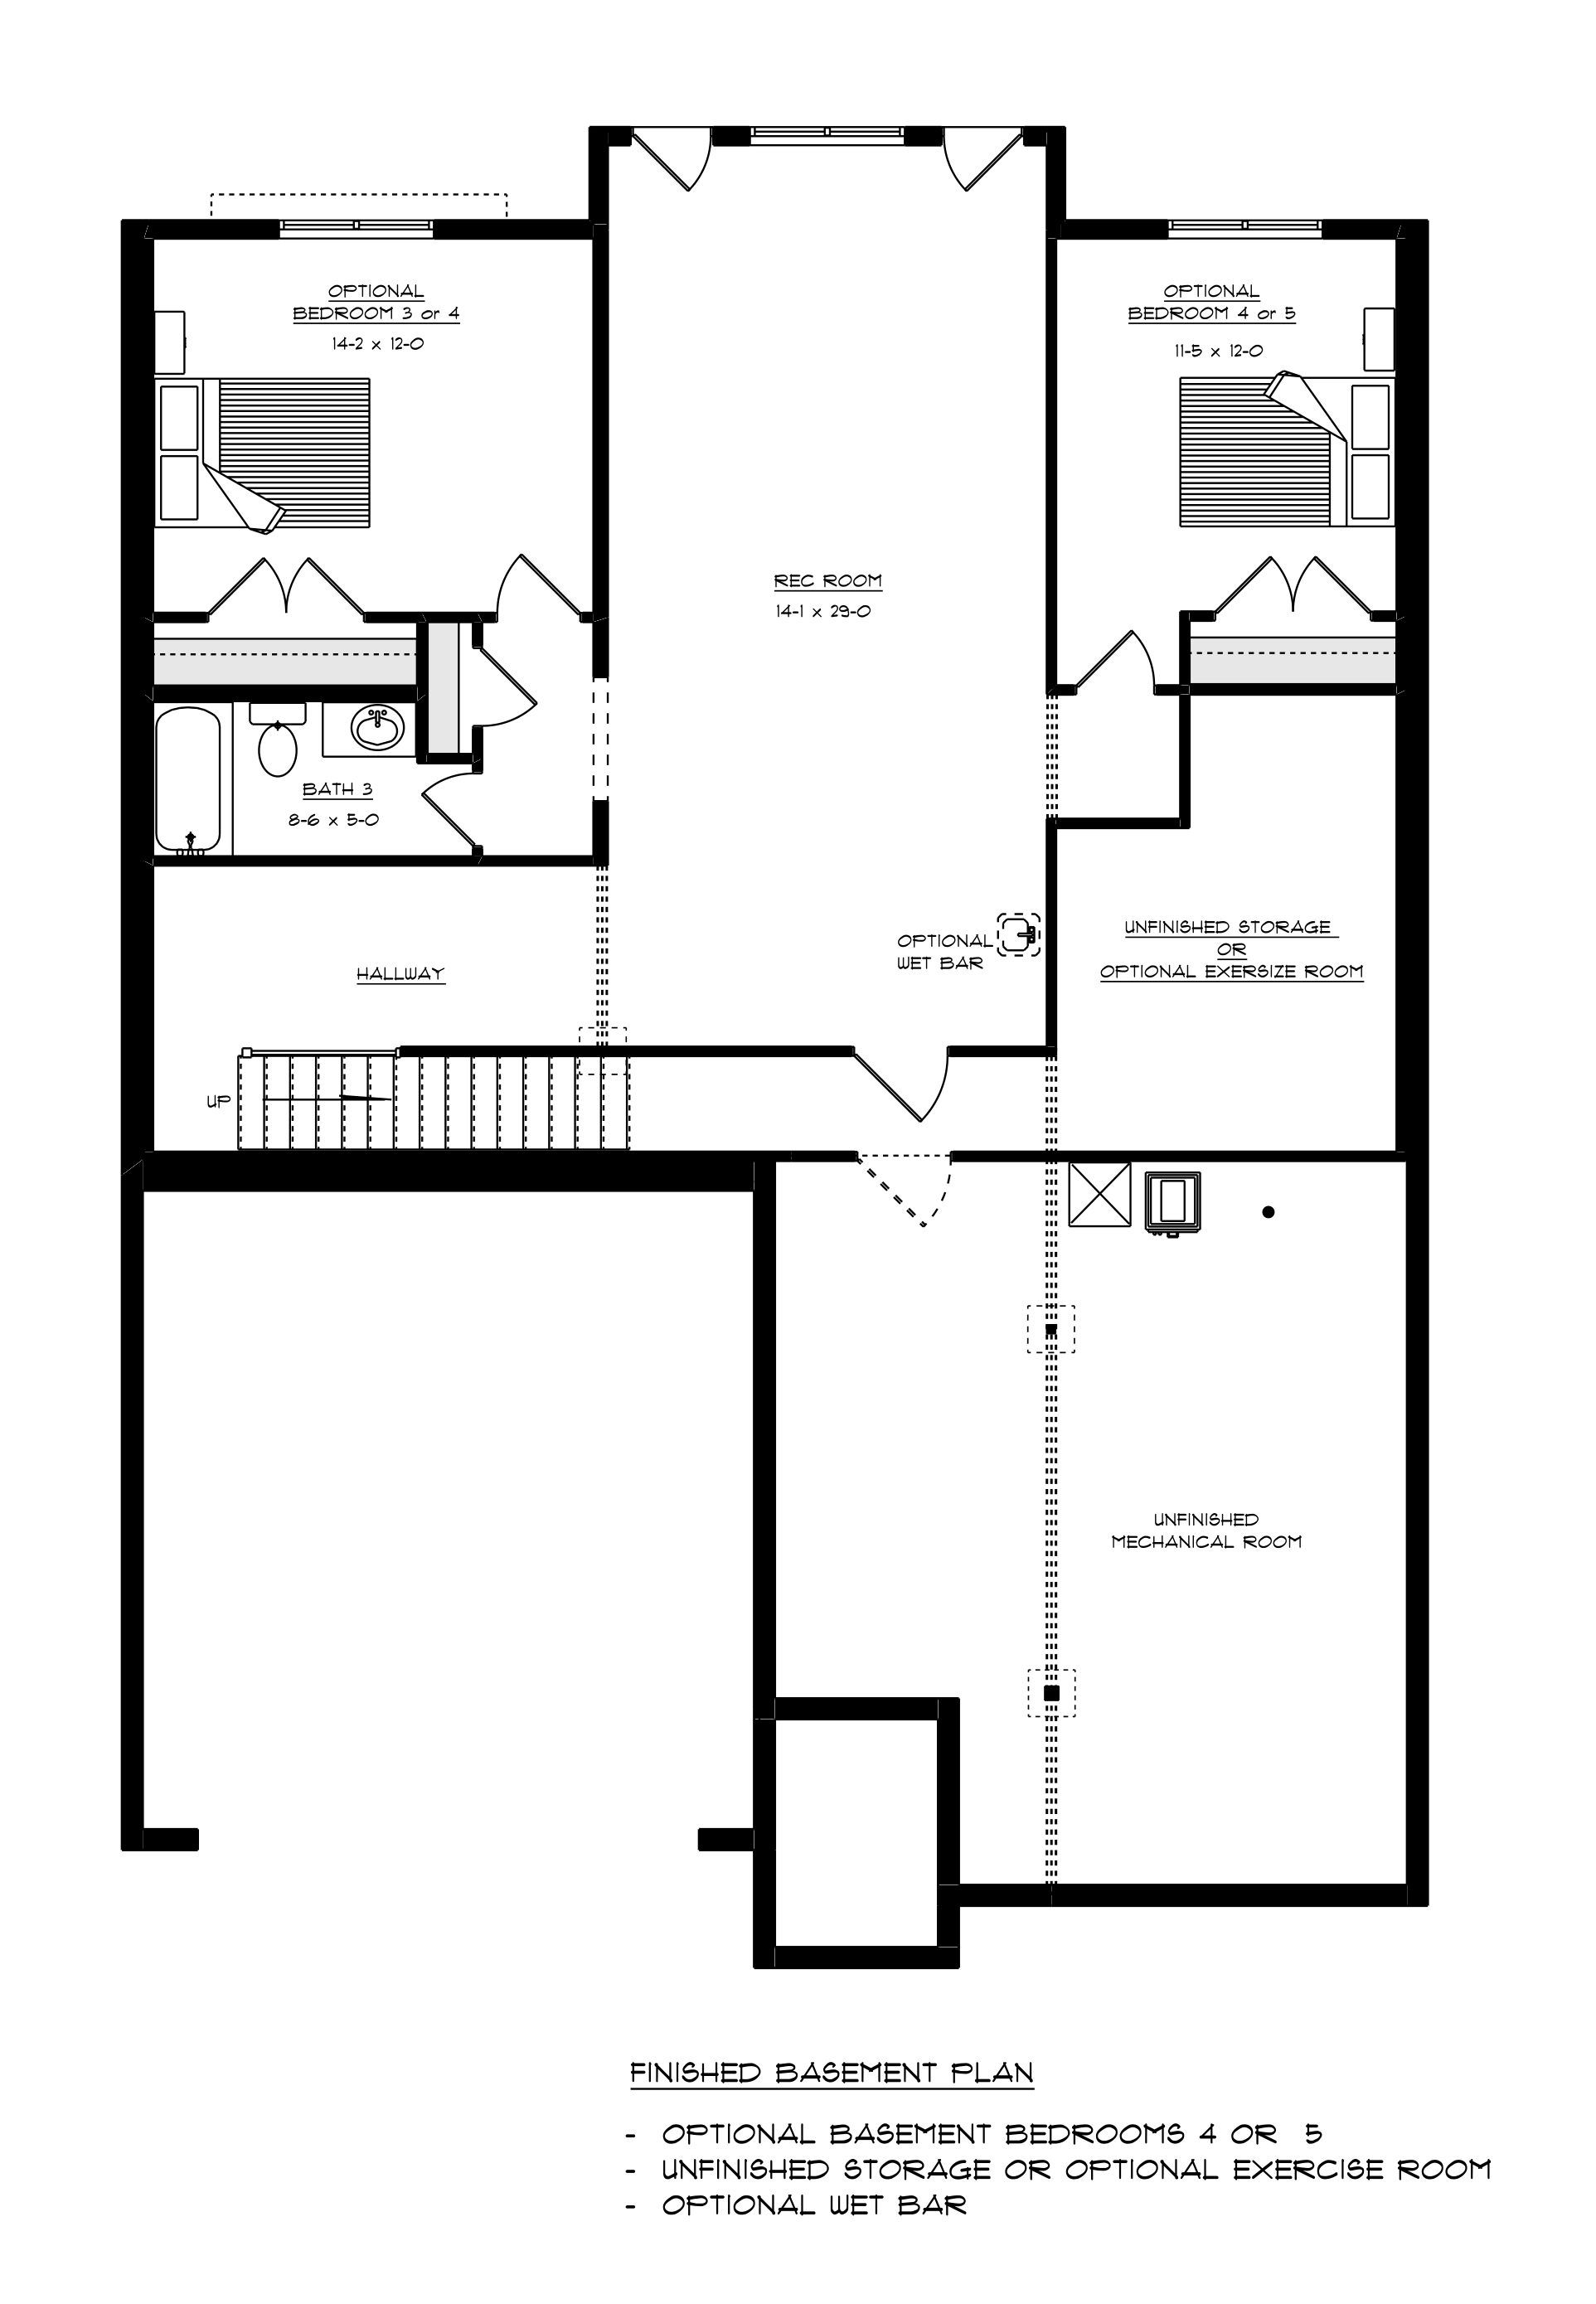 Pavilion basement floorplan with 2 bedrooms | Craig Builders